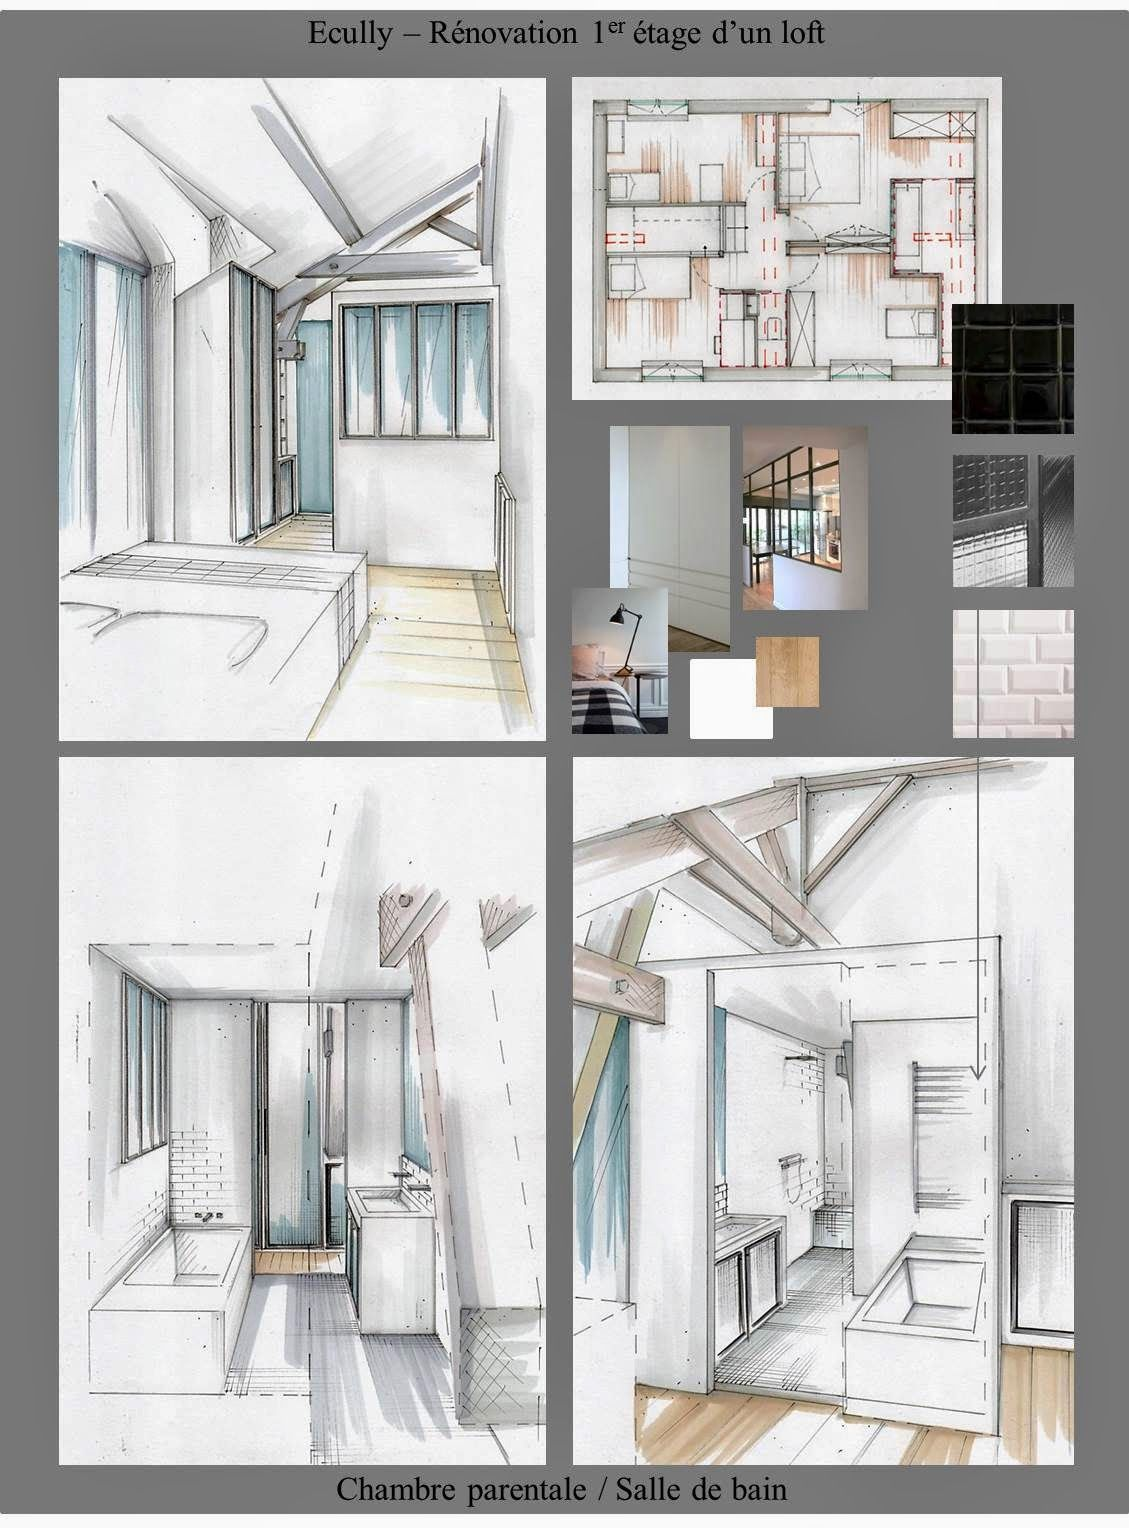 Plan Decoration Interieur Conception Graphique Planches Tendances Plans Perspectives